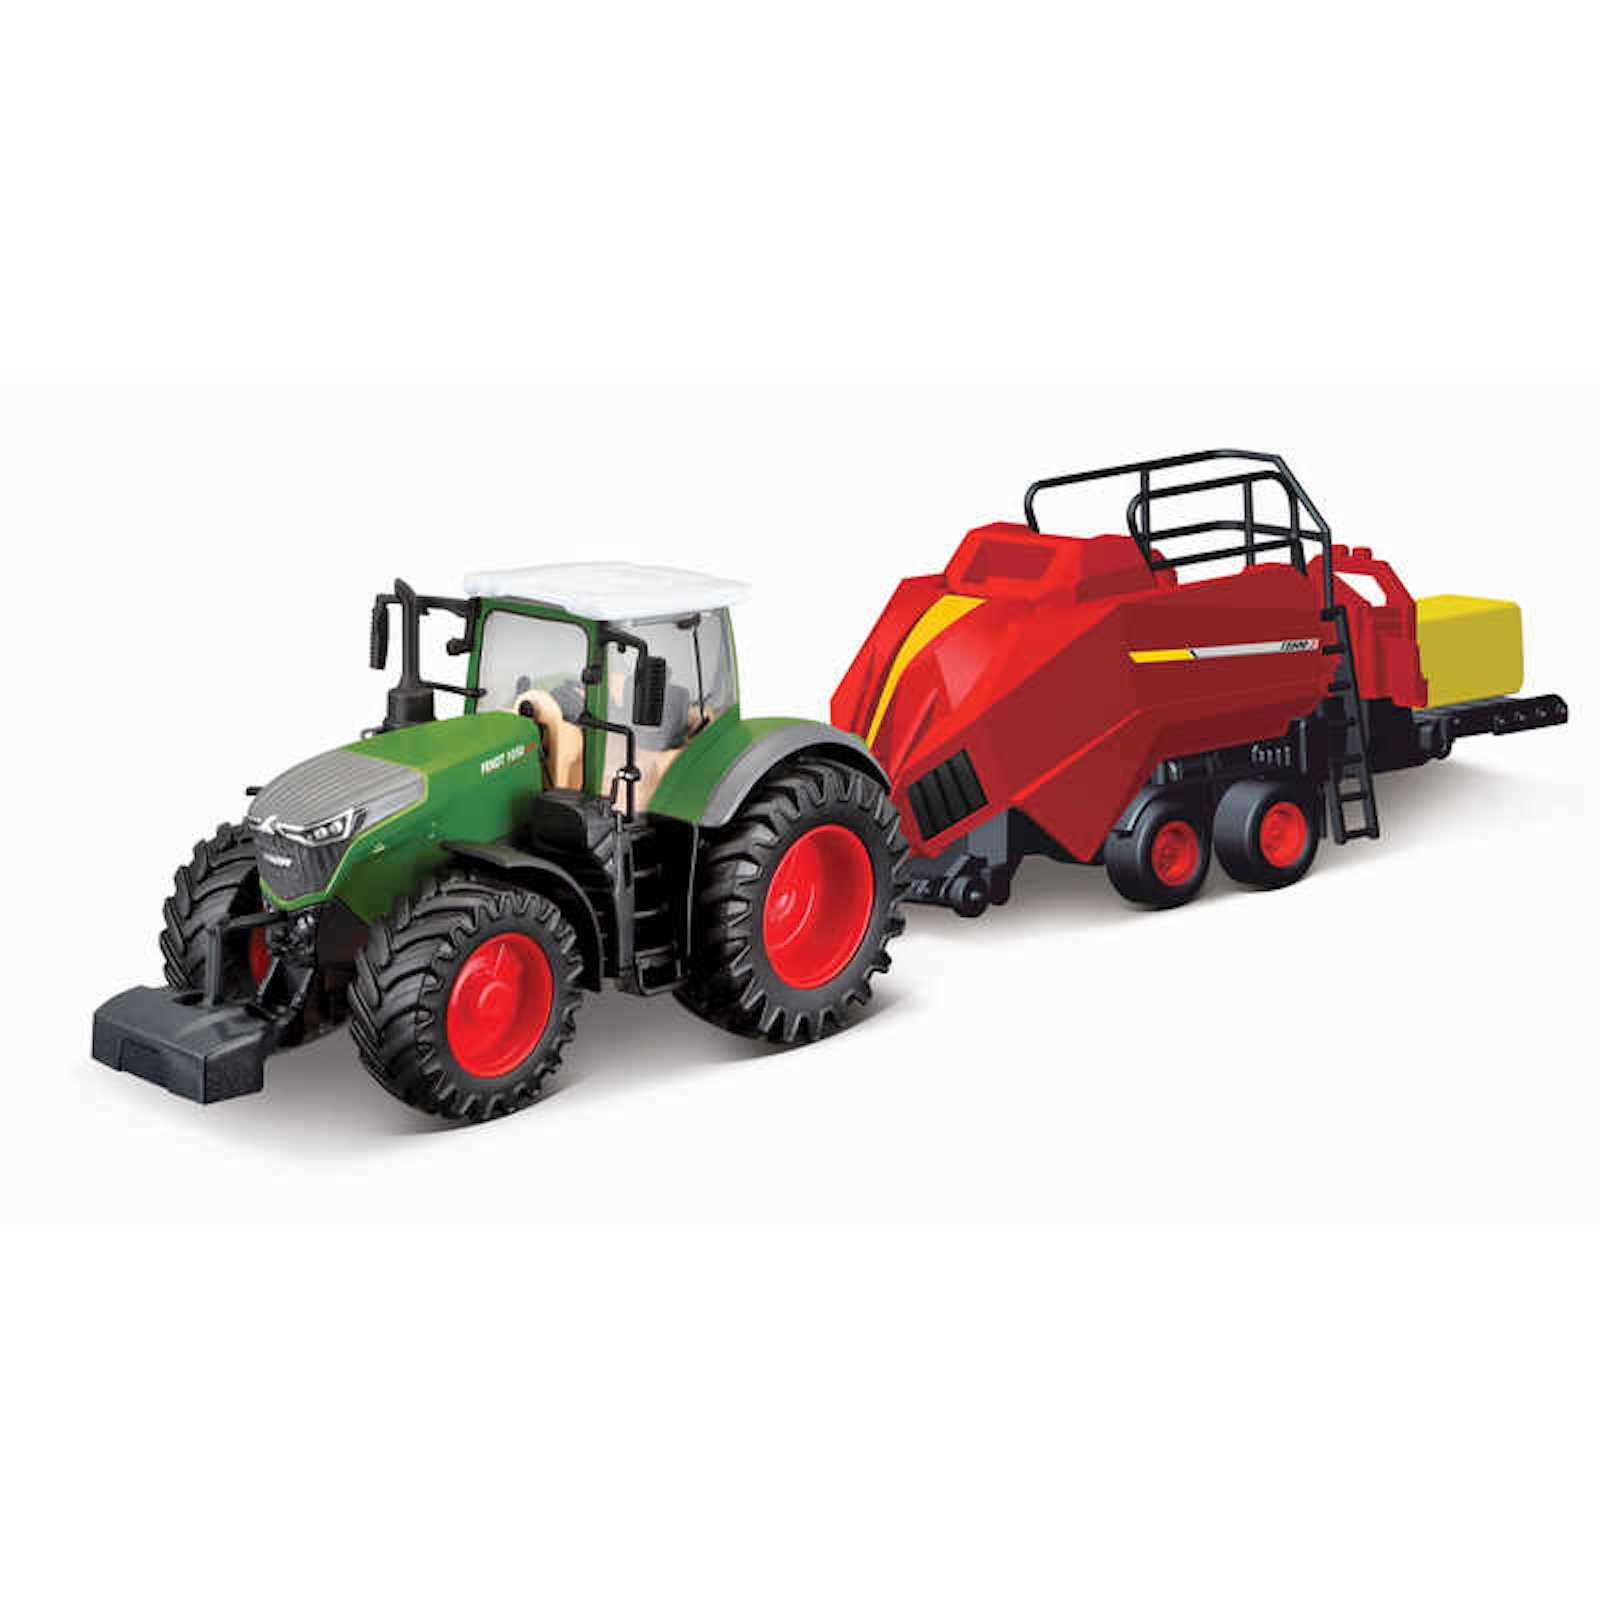 Fendt 1050 Vario Tractor With Baler Lifter Model Toy Childs Kids Dads Birthday Collectors Gift